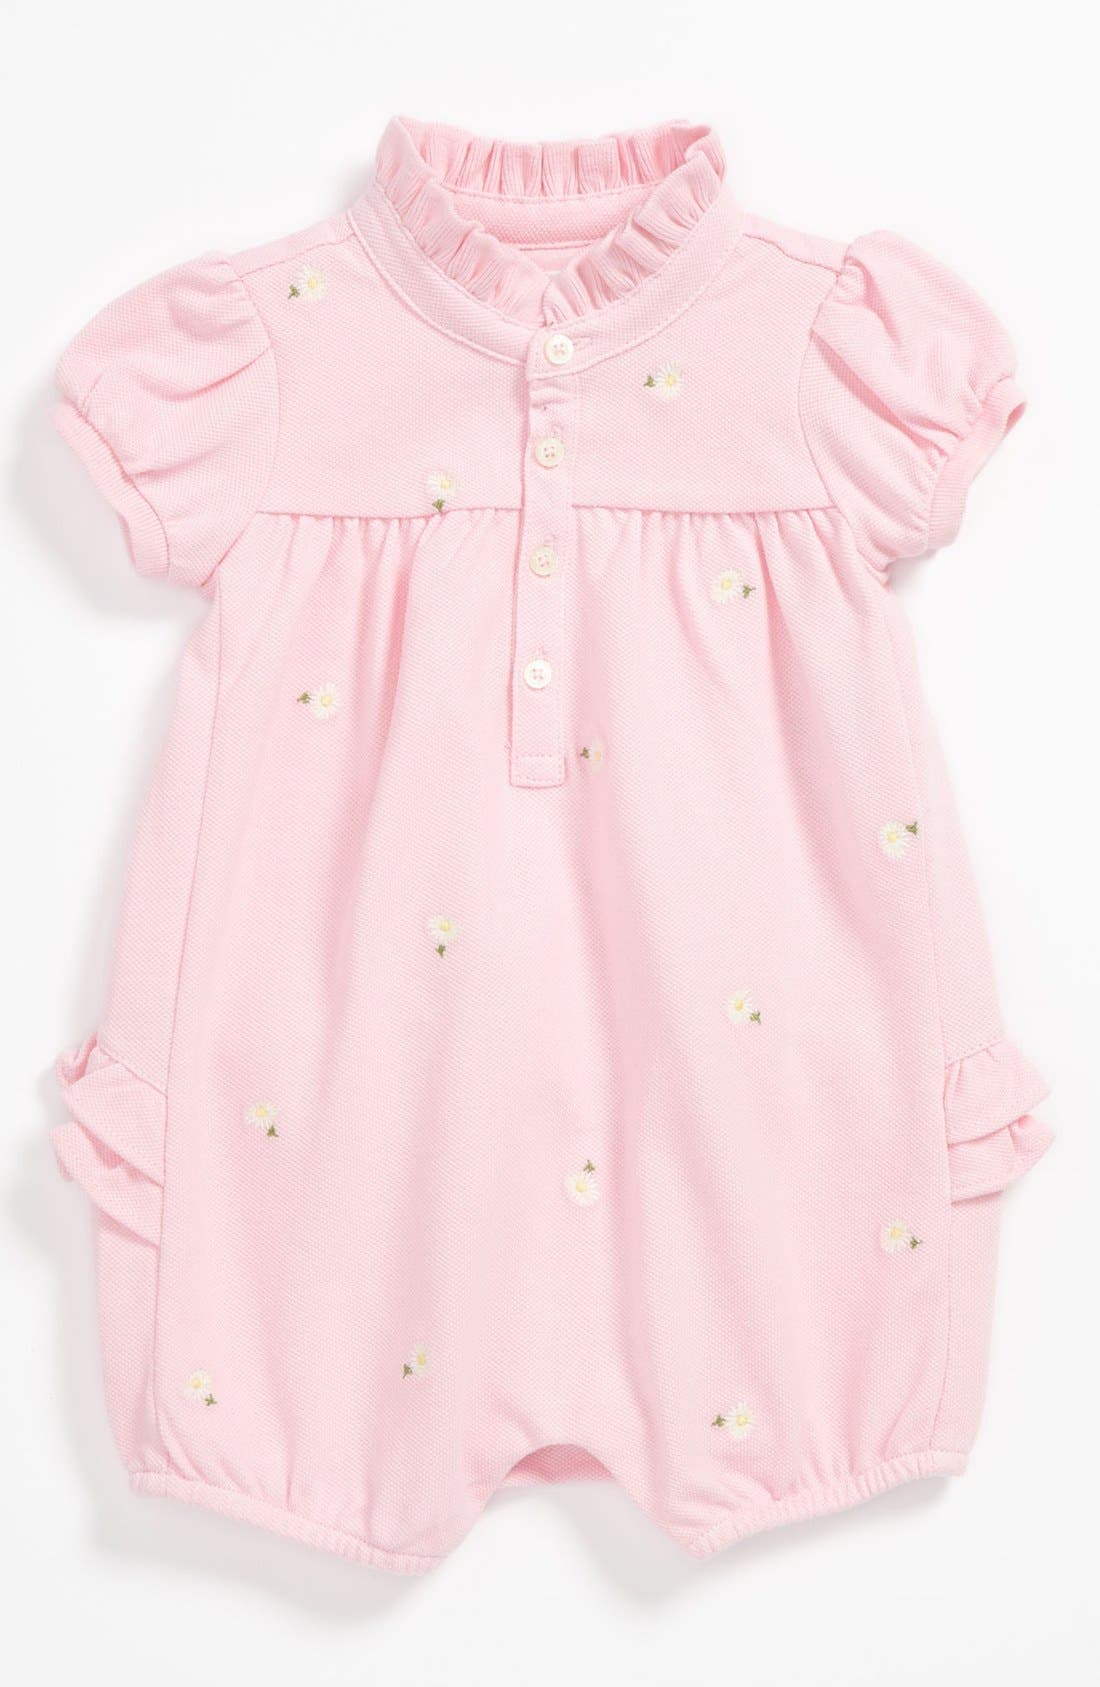 Alternate Image 1 Selected - Ralph Lauren Bubble Coveralls (Baby)